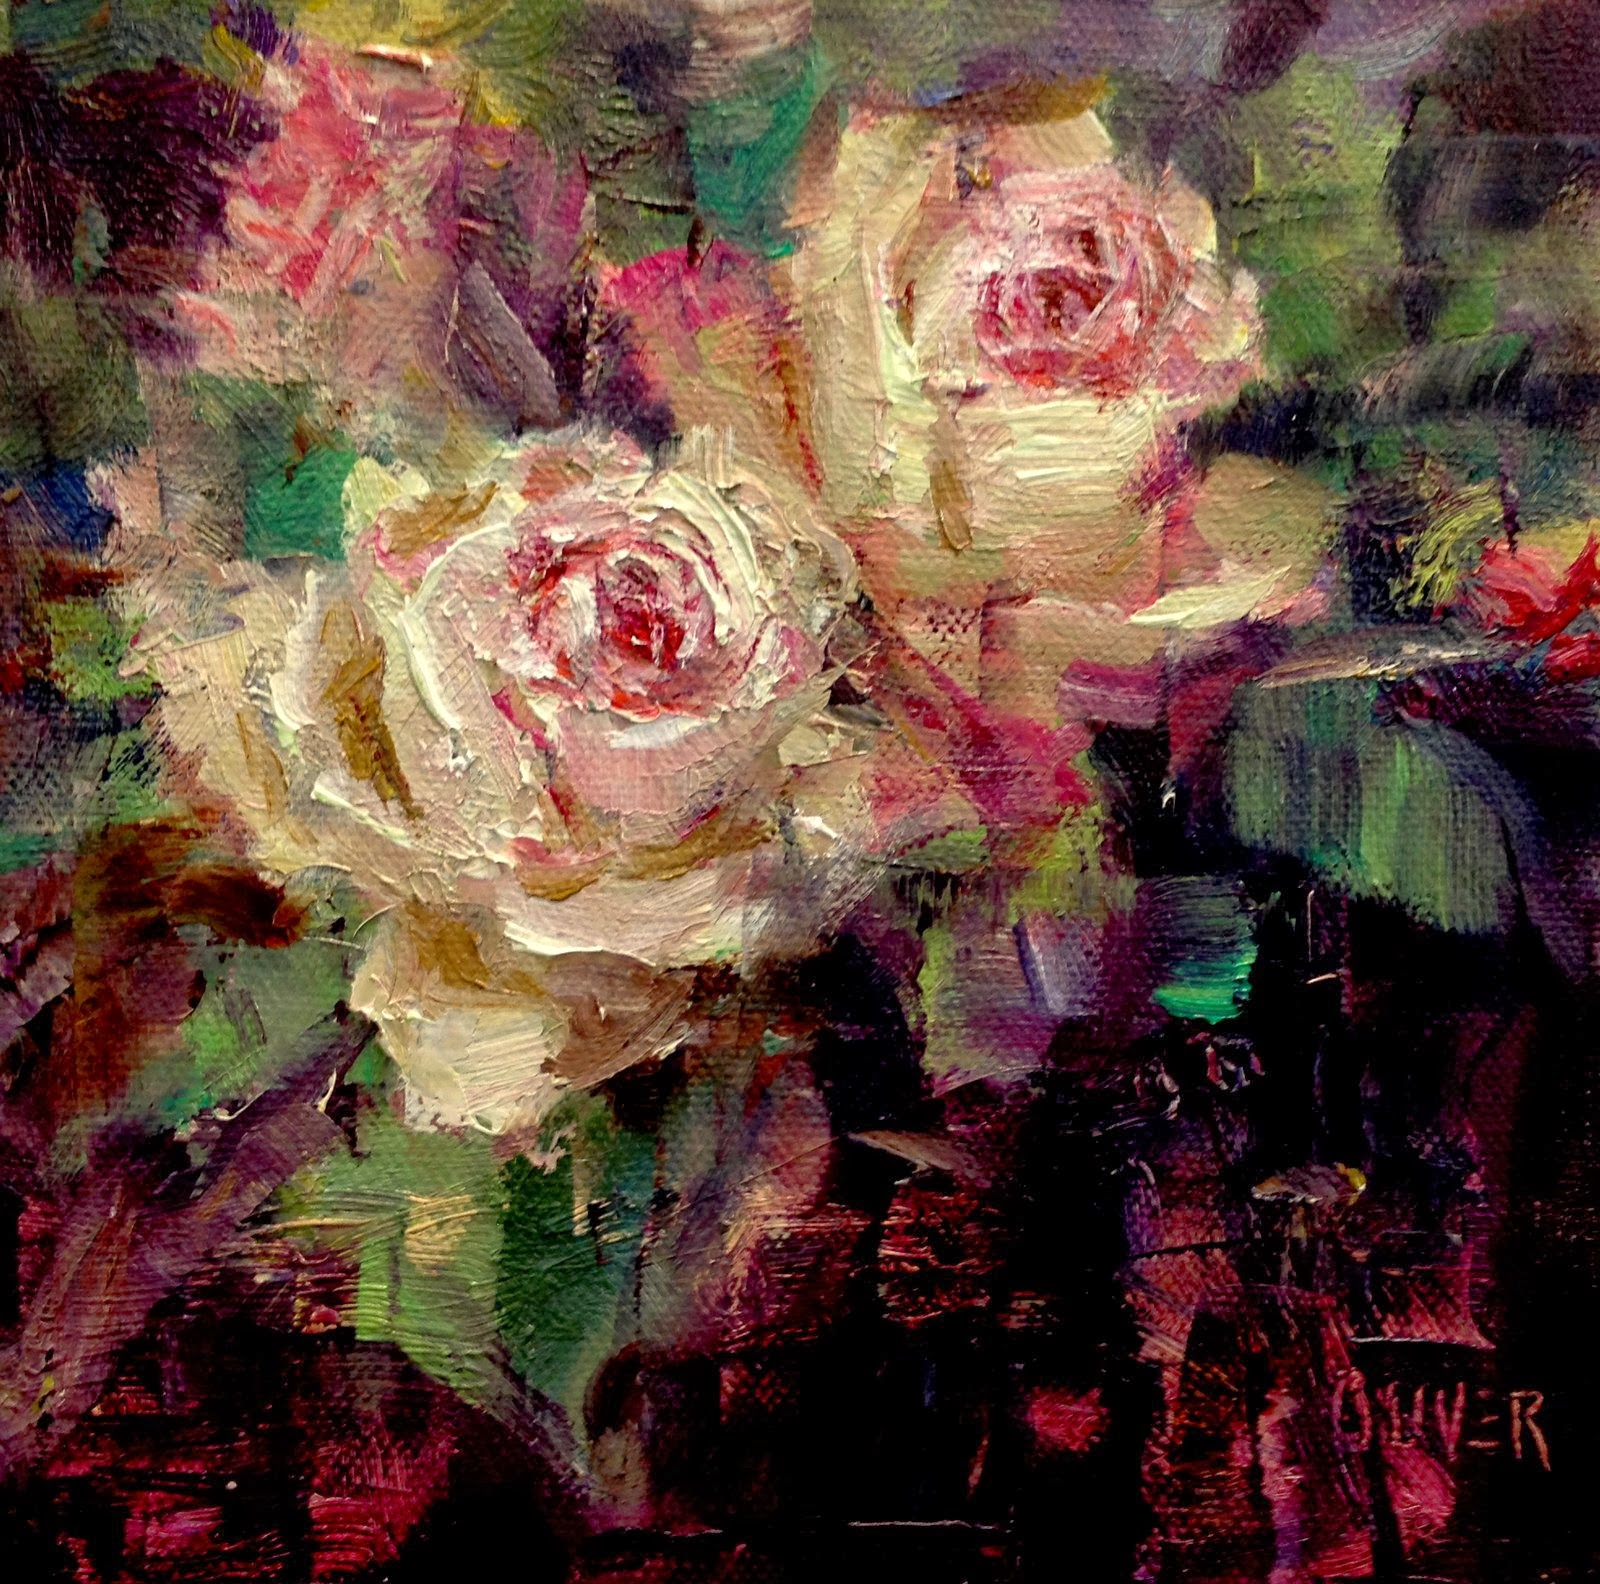 Art talk julie ford oliver birthday flowers roses birthday flowers roses izmirmasajfo